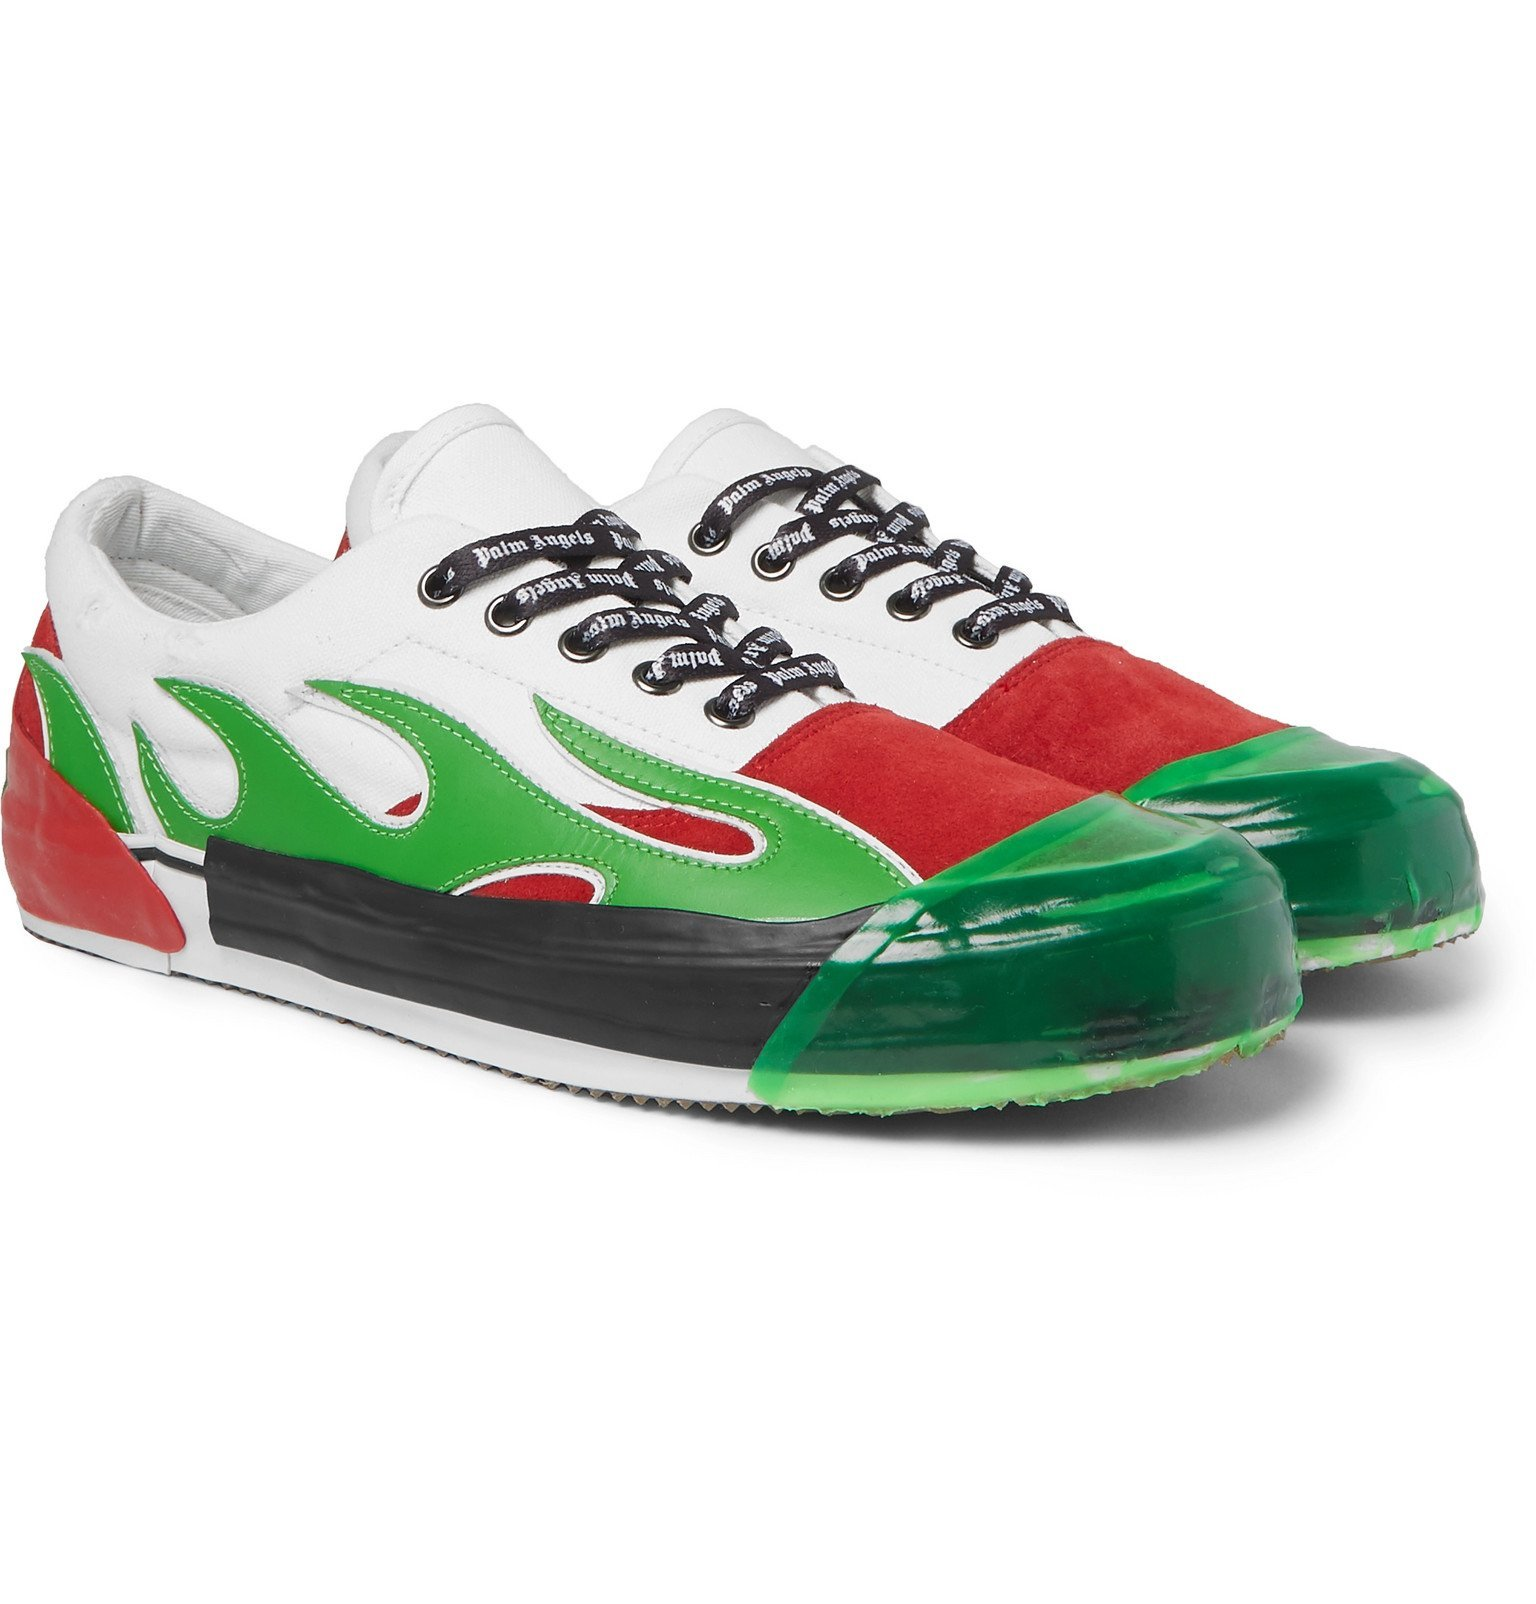 Photo: Palm Angels - Flame Distressed Canvas, Suede, Leather and Rubber Sneakers - Green